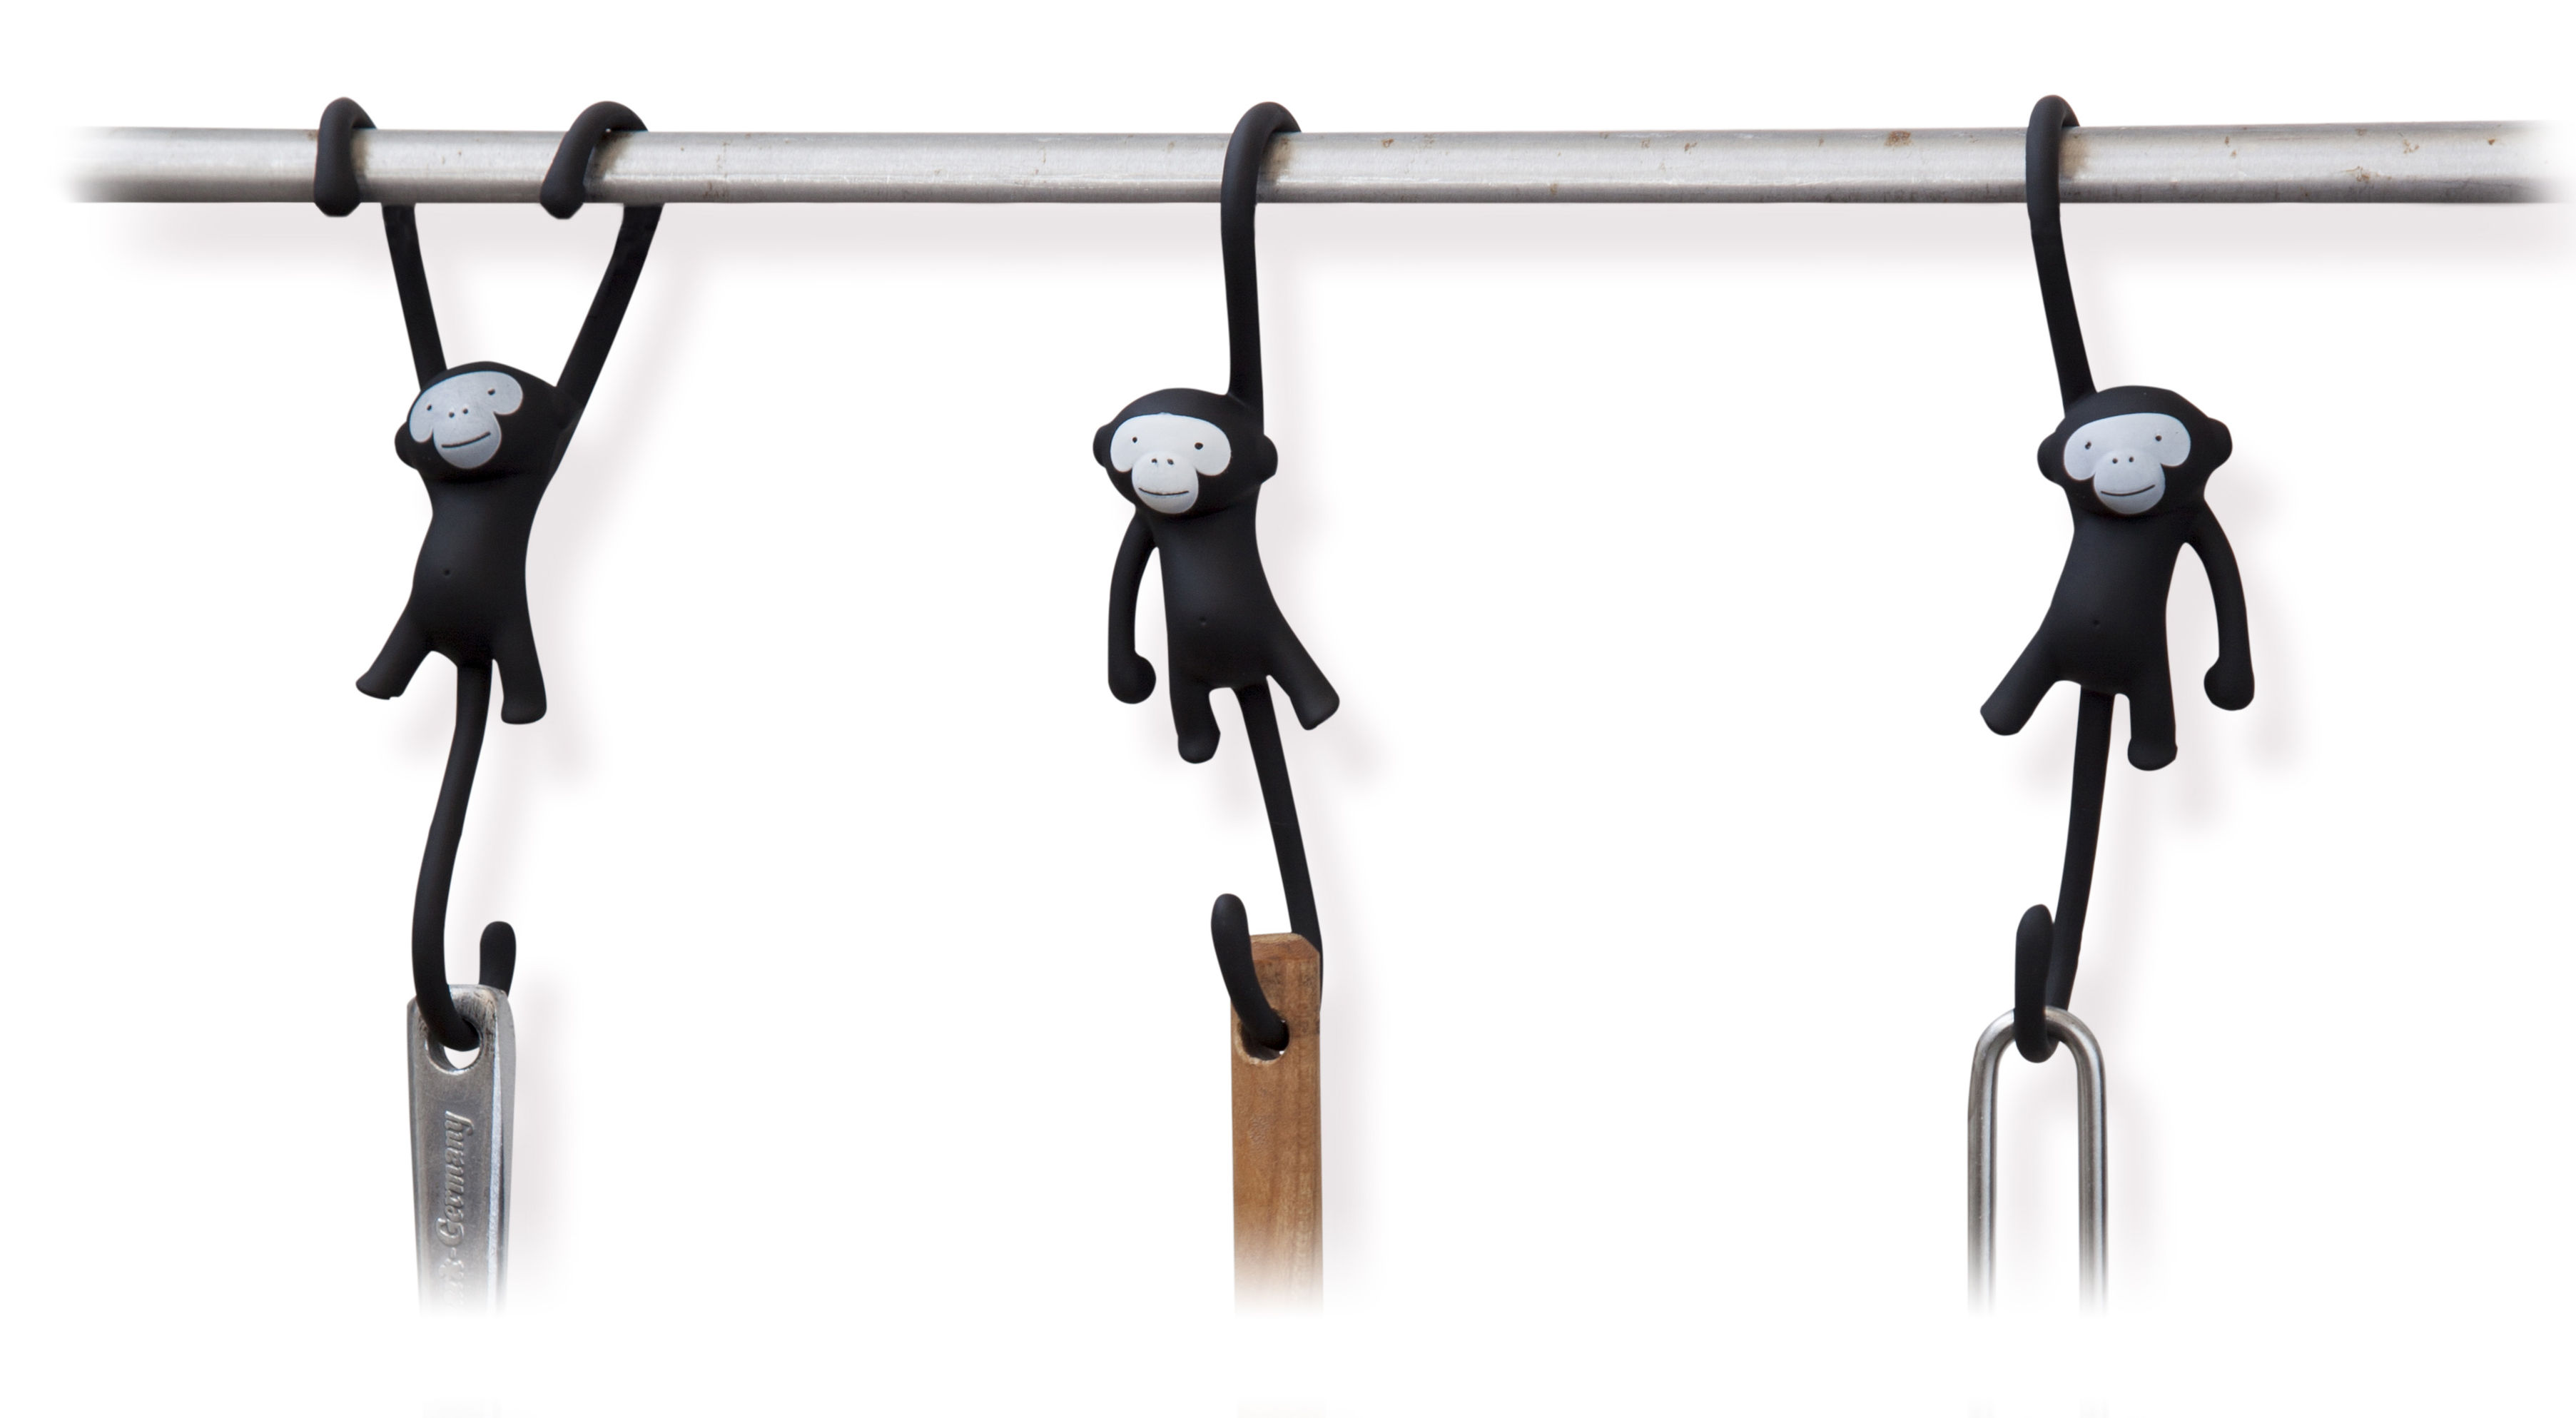 Accessories - Bathroom Accessories - Just hanging Hook - Set of 3 by Pa Design - Black - Plastic material